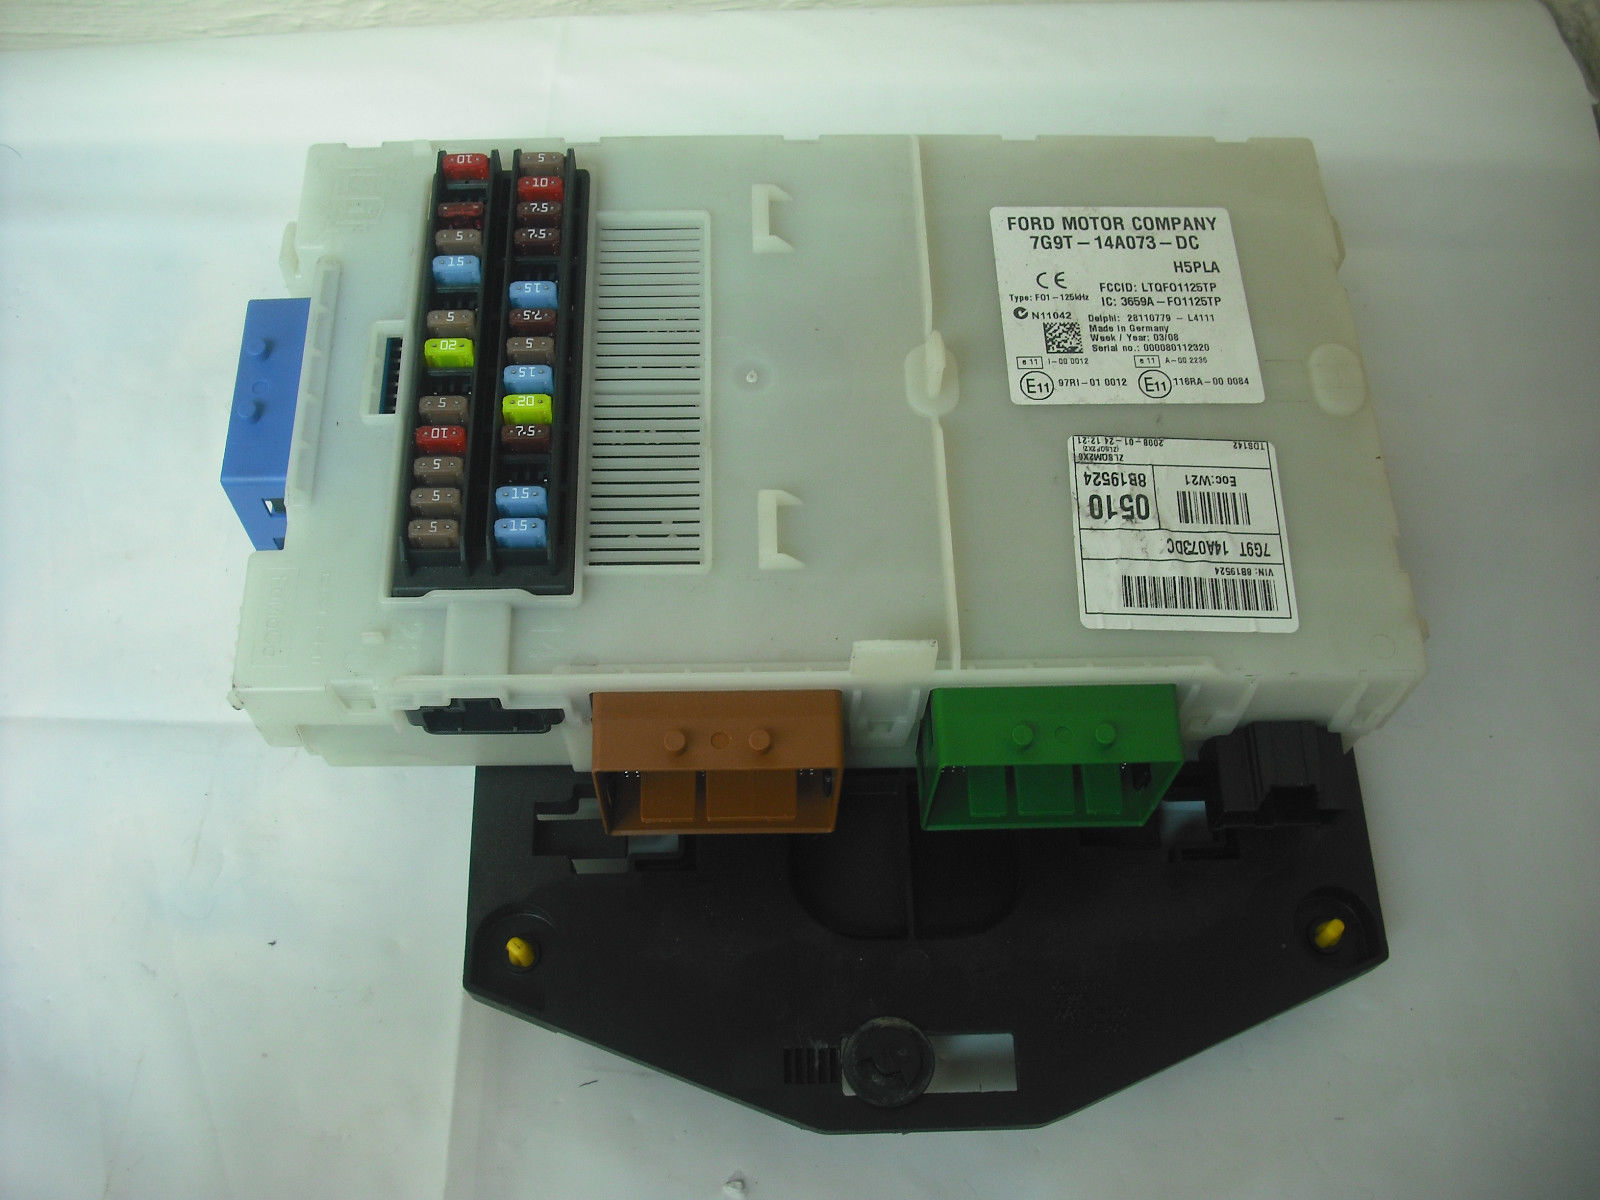 ford galaxy mk3 s max 2.0 tdci fuse box ecu sam unit 7g9t 14a073 dc 1485 p ford galaxy mk3 s max 2 0 tdci fuse box ecu sam unit 7g9t 14a073 dc ford capri mk3 fuse box at n-0.co